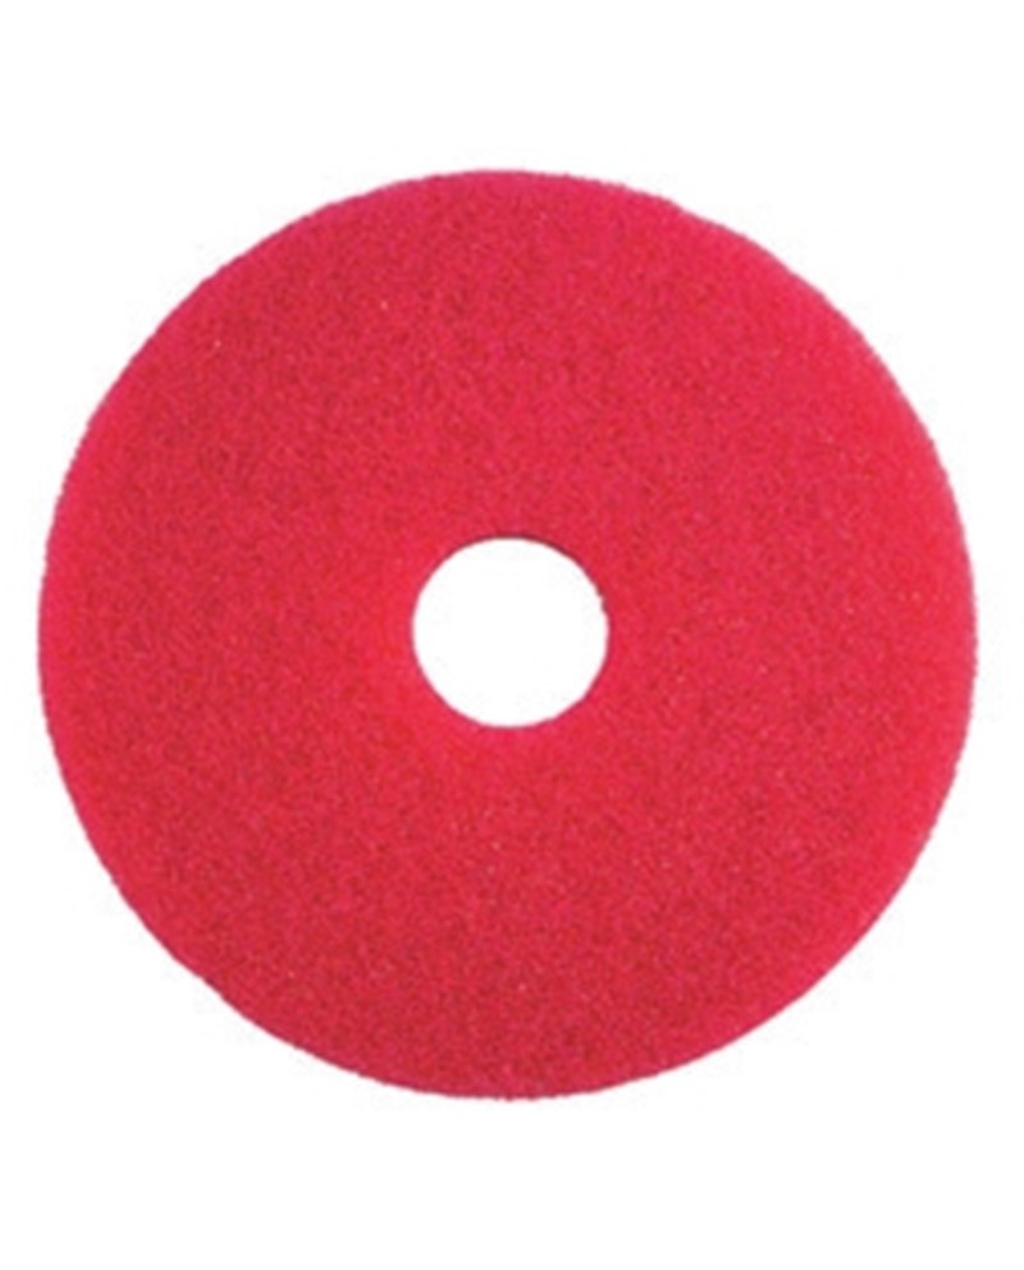 17 Red Maintaining Pads (Pack of 5)